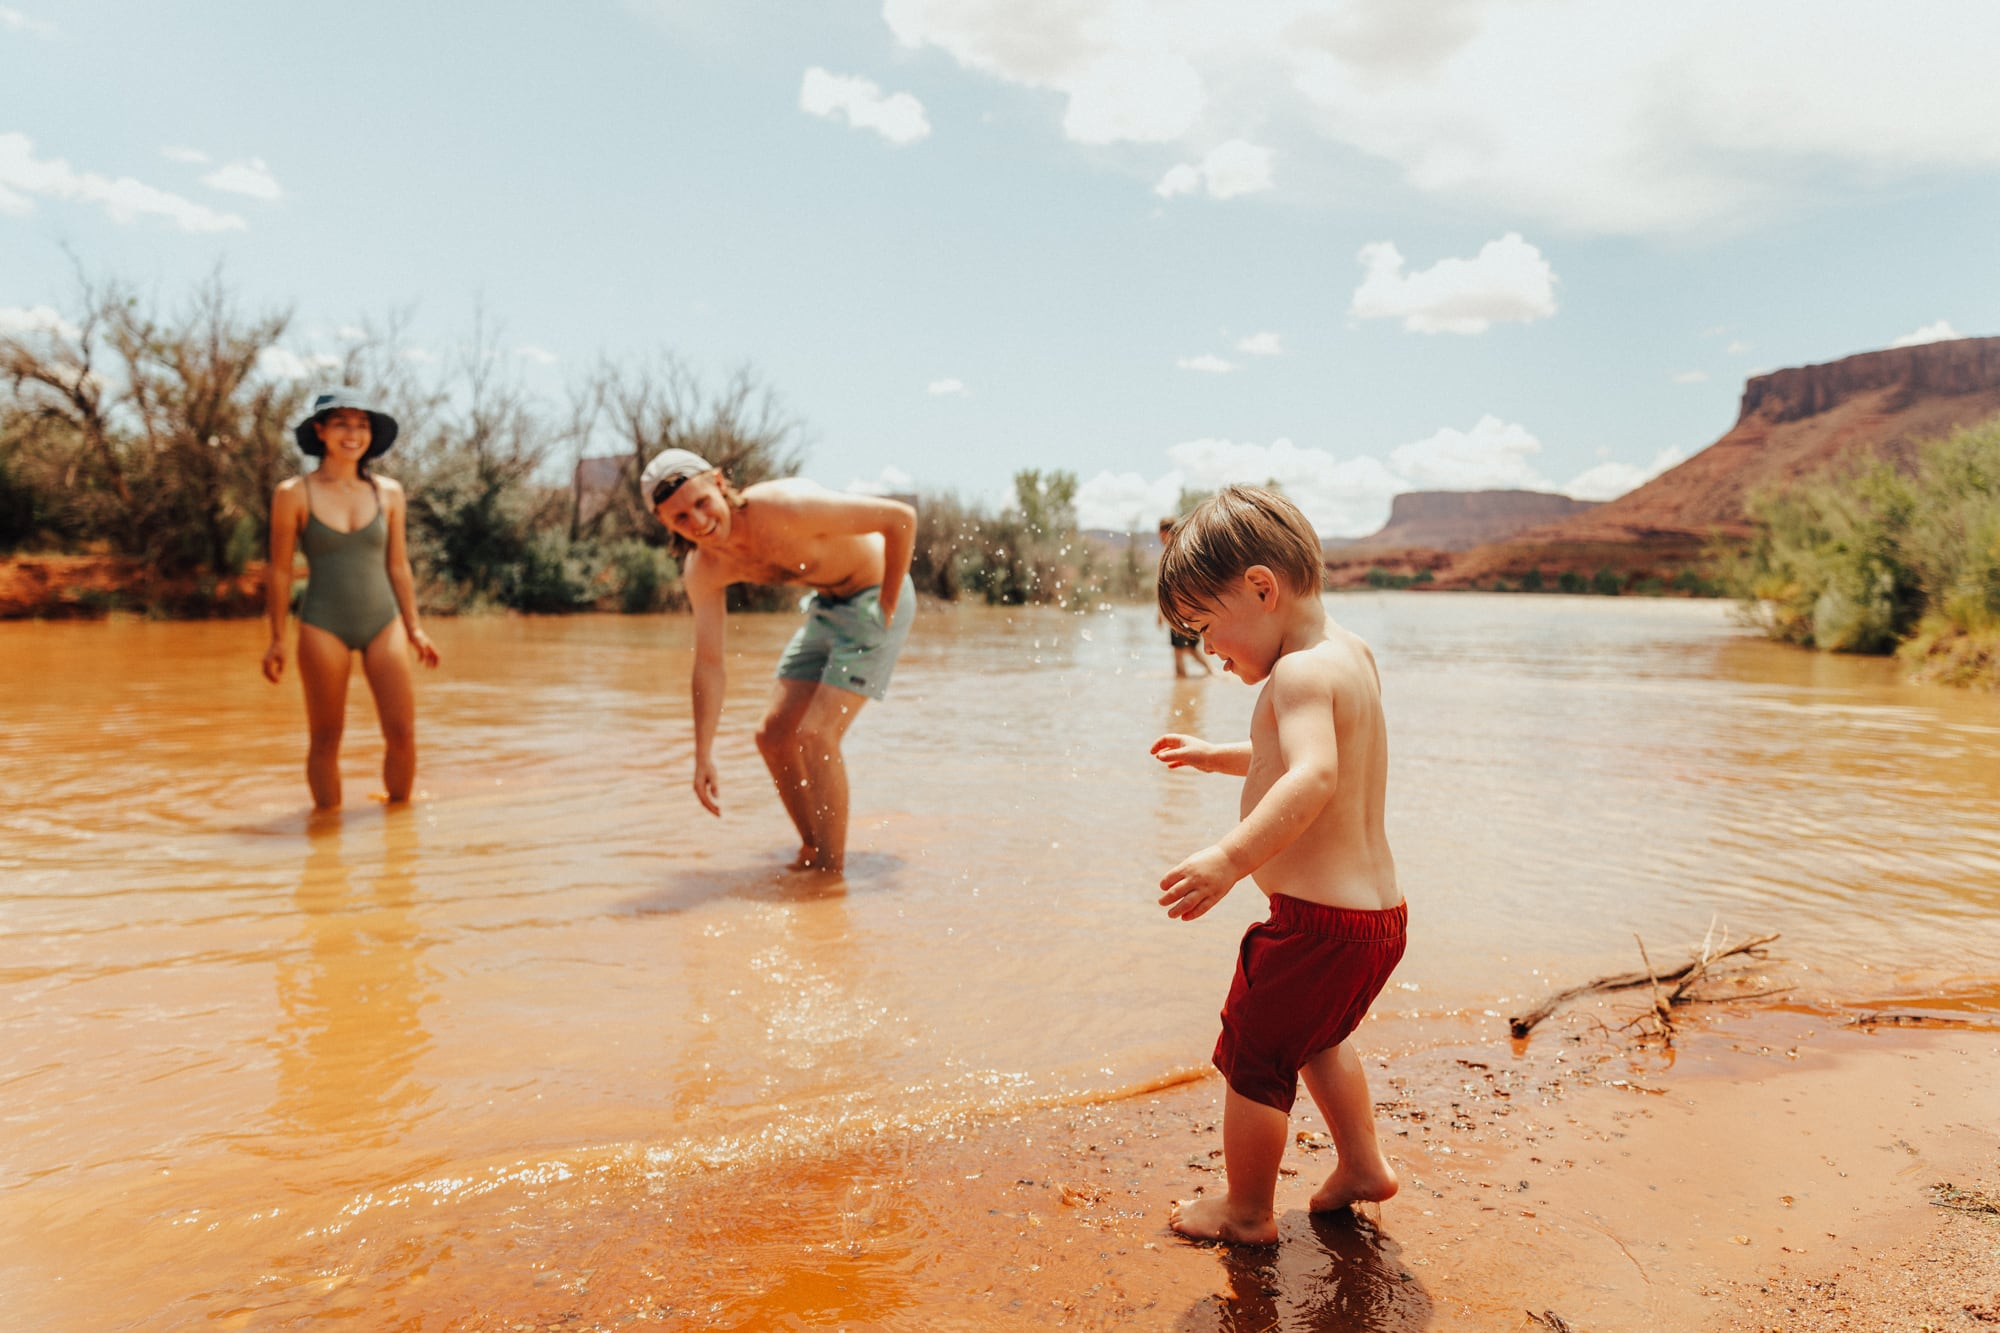 Mother and father splashing son in desert river wash